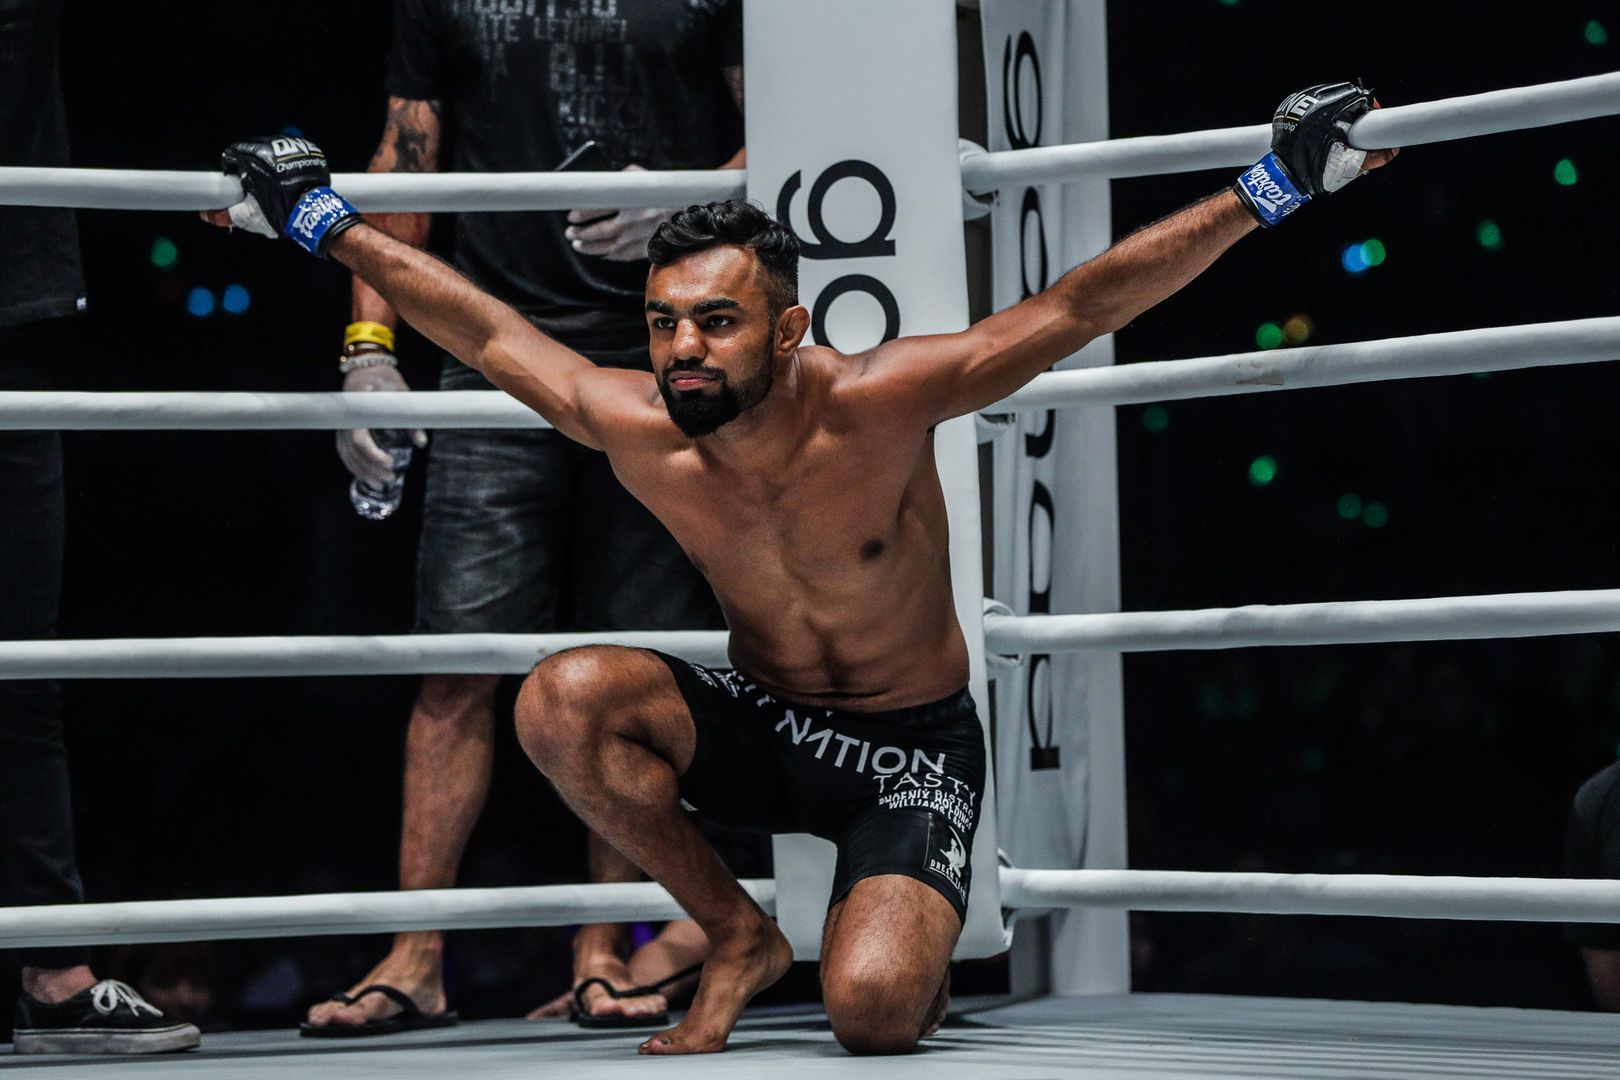 Indian mixed martial artist Gurdarshan Mangat